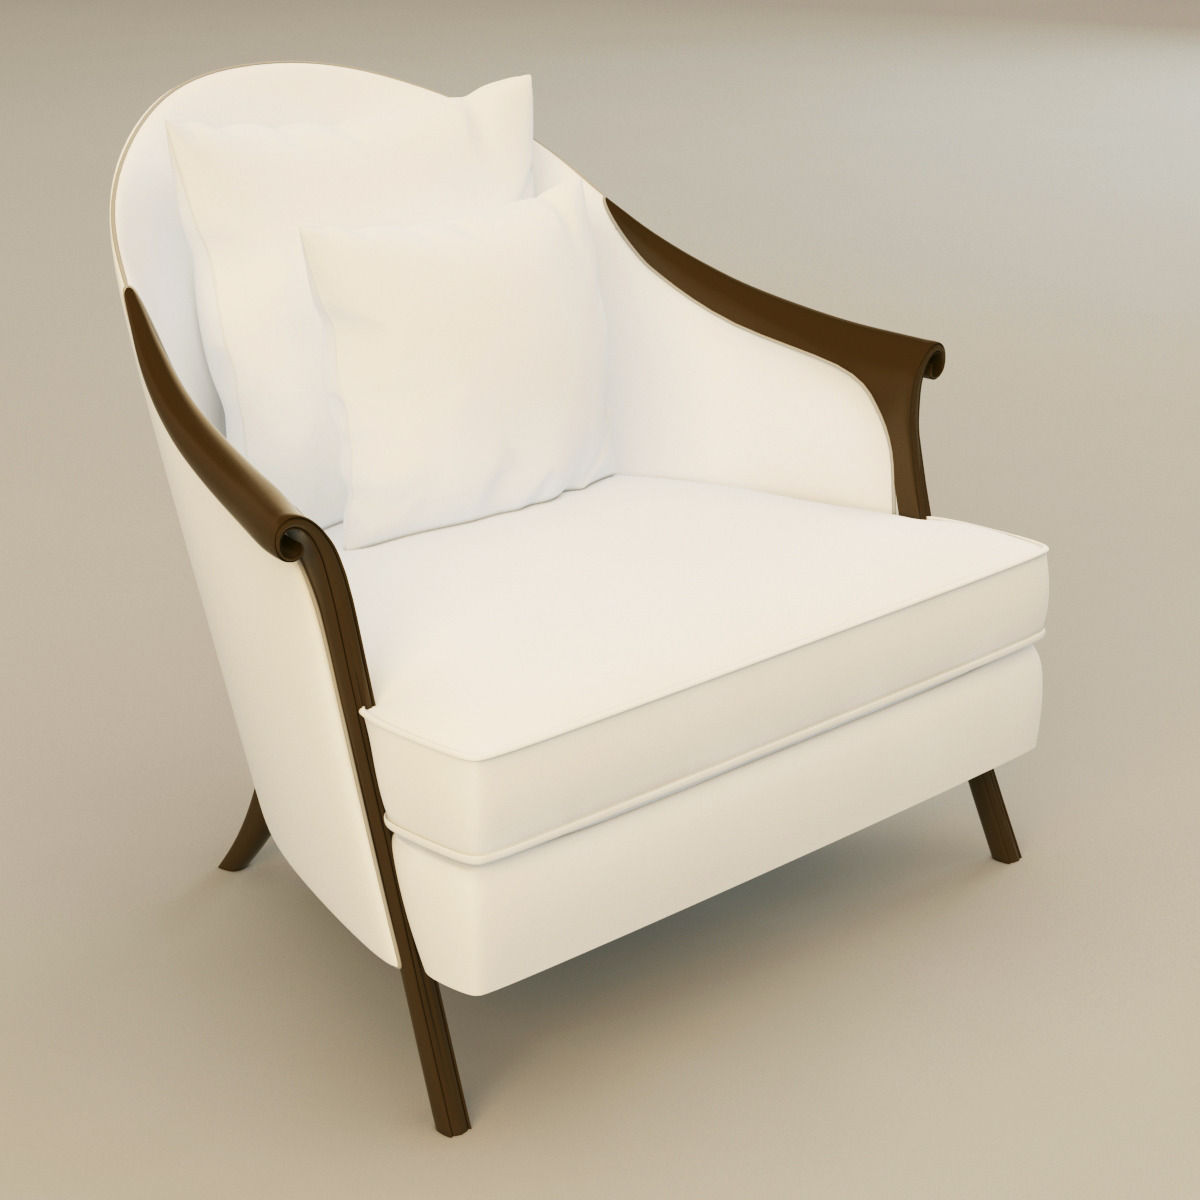 Christopher Guy Poltrona Armchair 3d Model Max Obj 3ds Fbx Mtl 1 ...